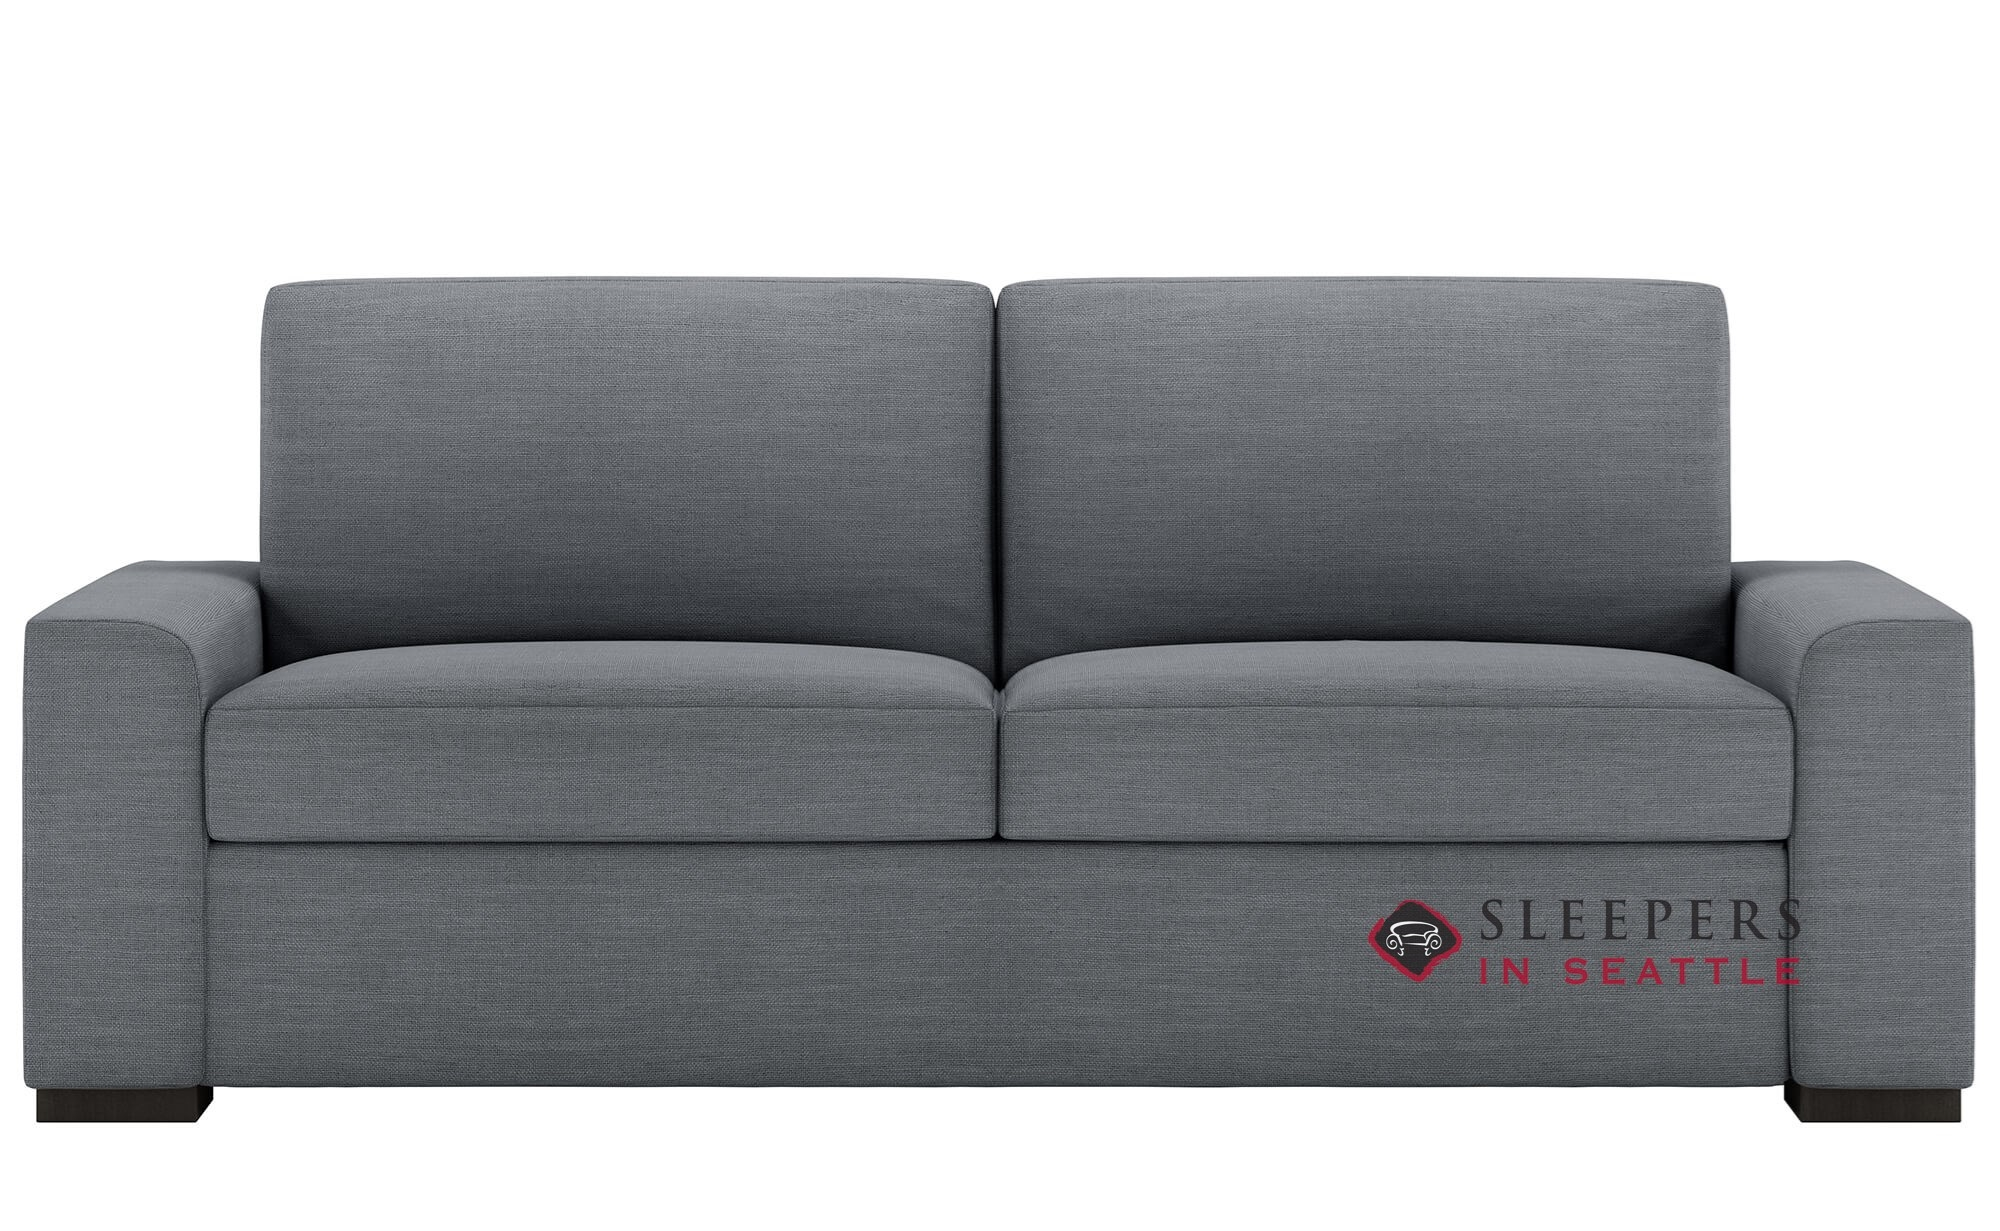 American Sofa Images American Leather Olson Low Leg Queen Comfort Sleeper Generation Viii